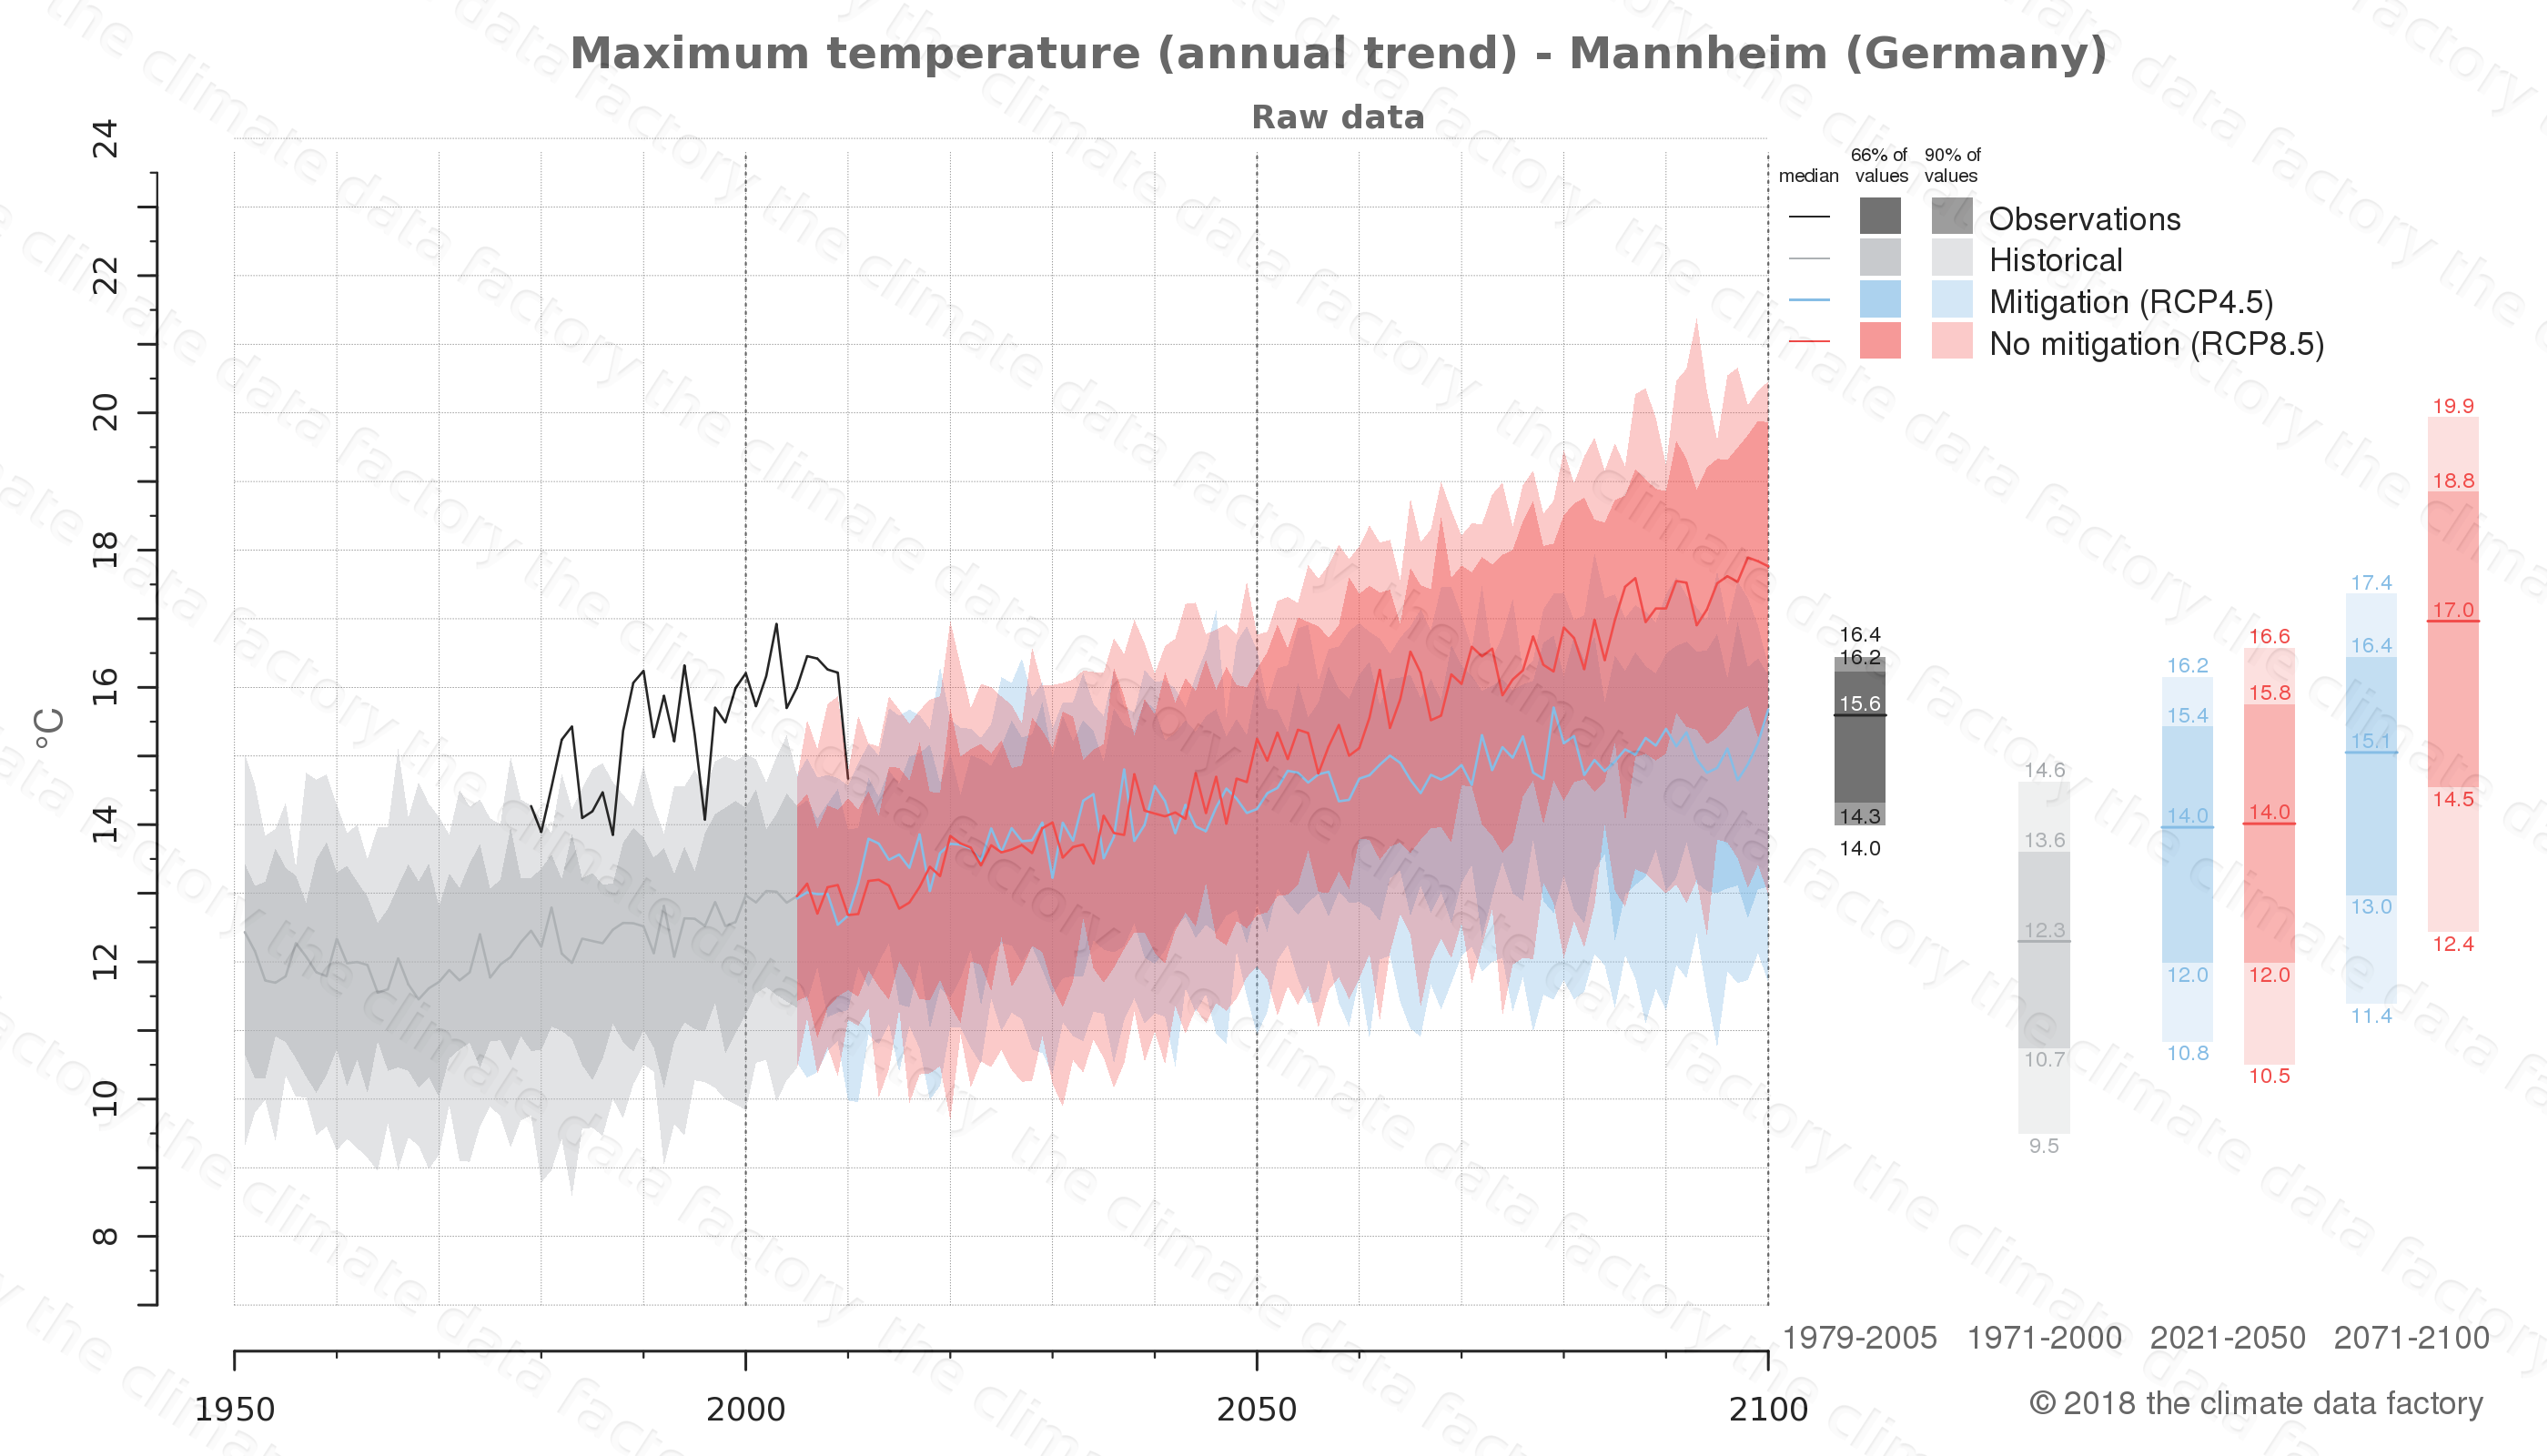 climate change data policy adaptation climate graph city data maximum-temperature mannheim germany